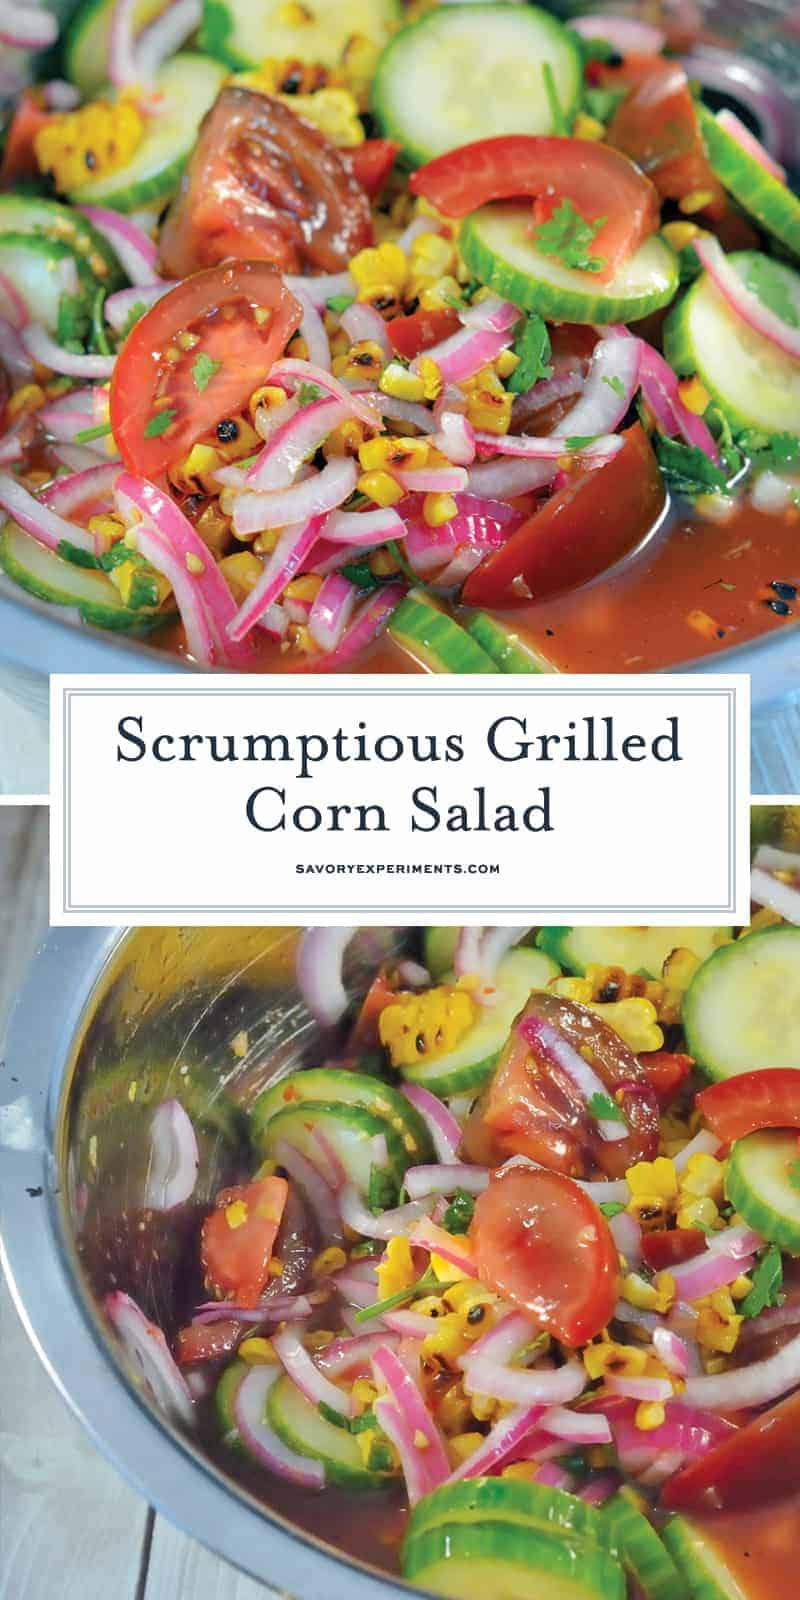 Grilled Corn, Tomato and Cucumber Salad